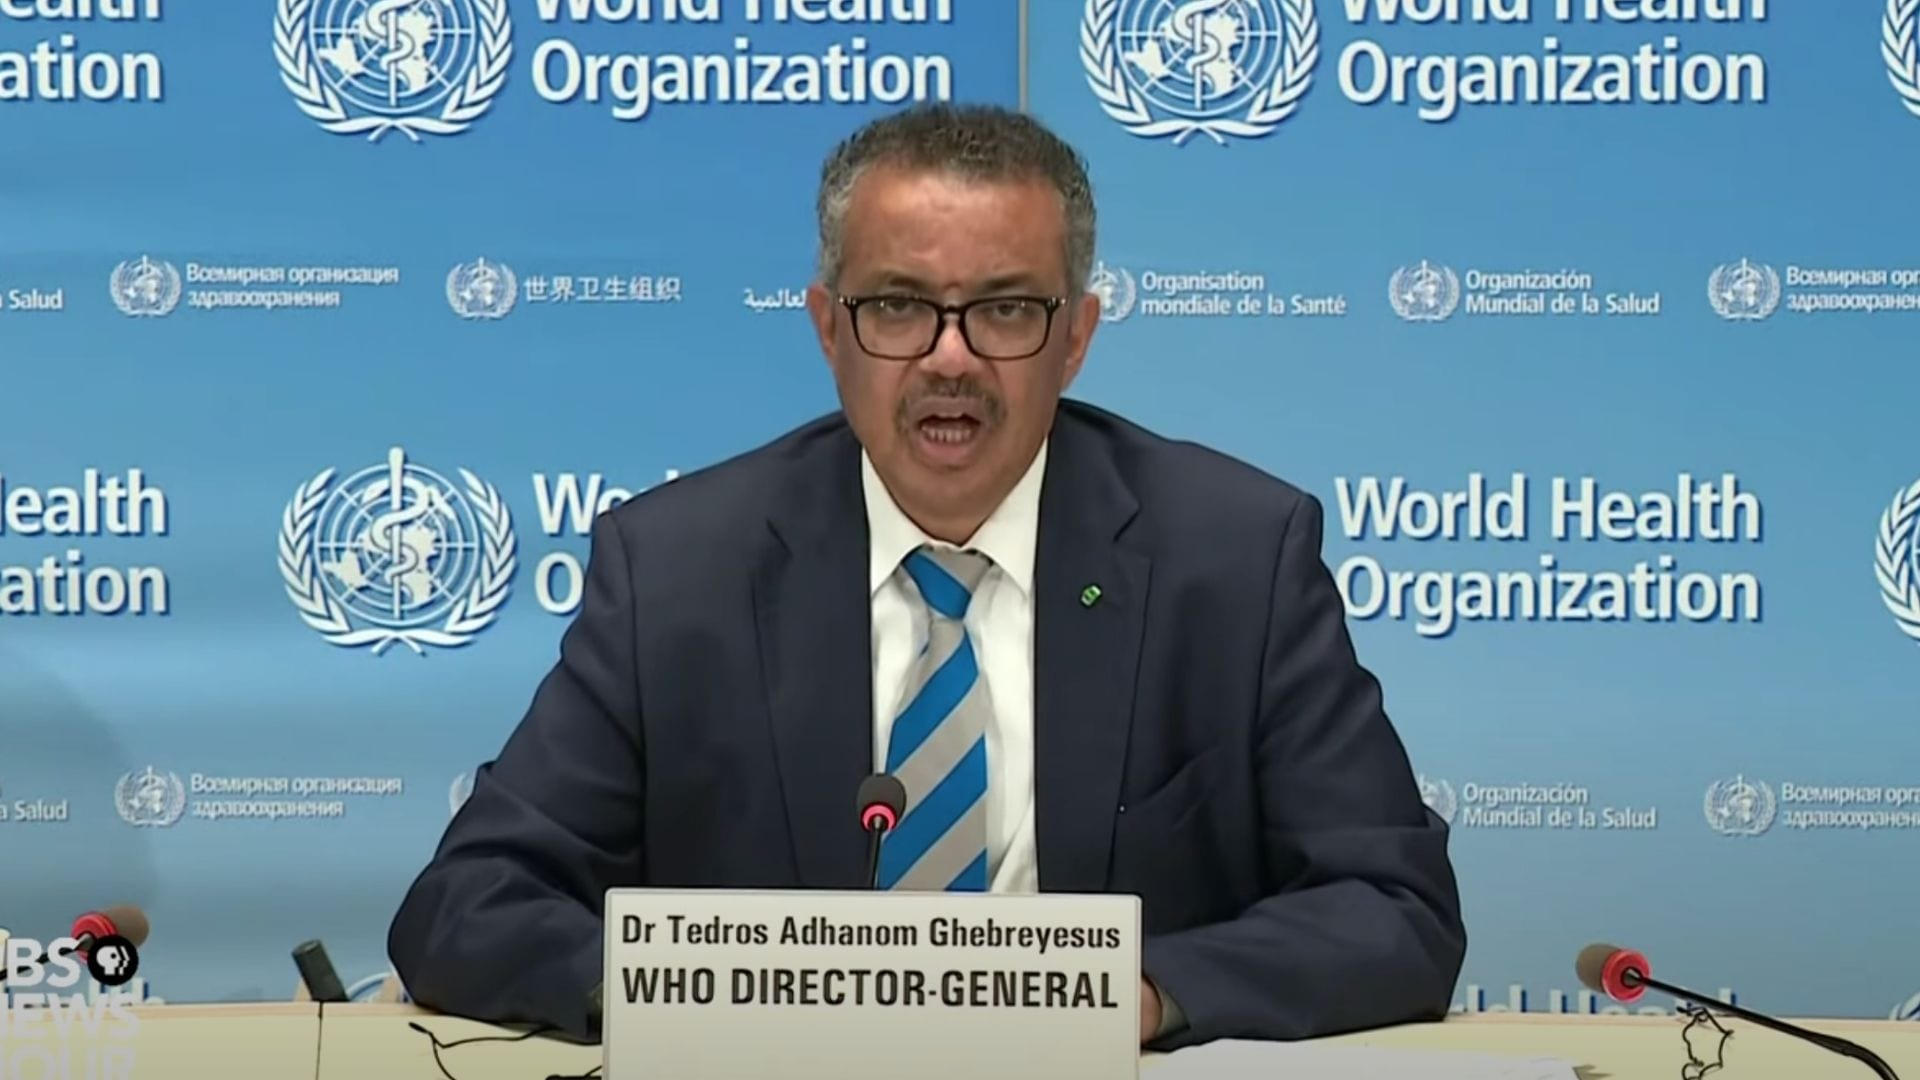 World Health Organization Coronavirus Press Conference May 6